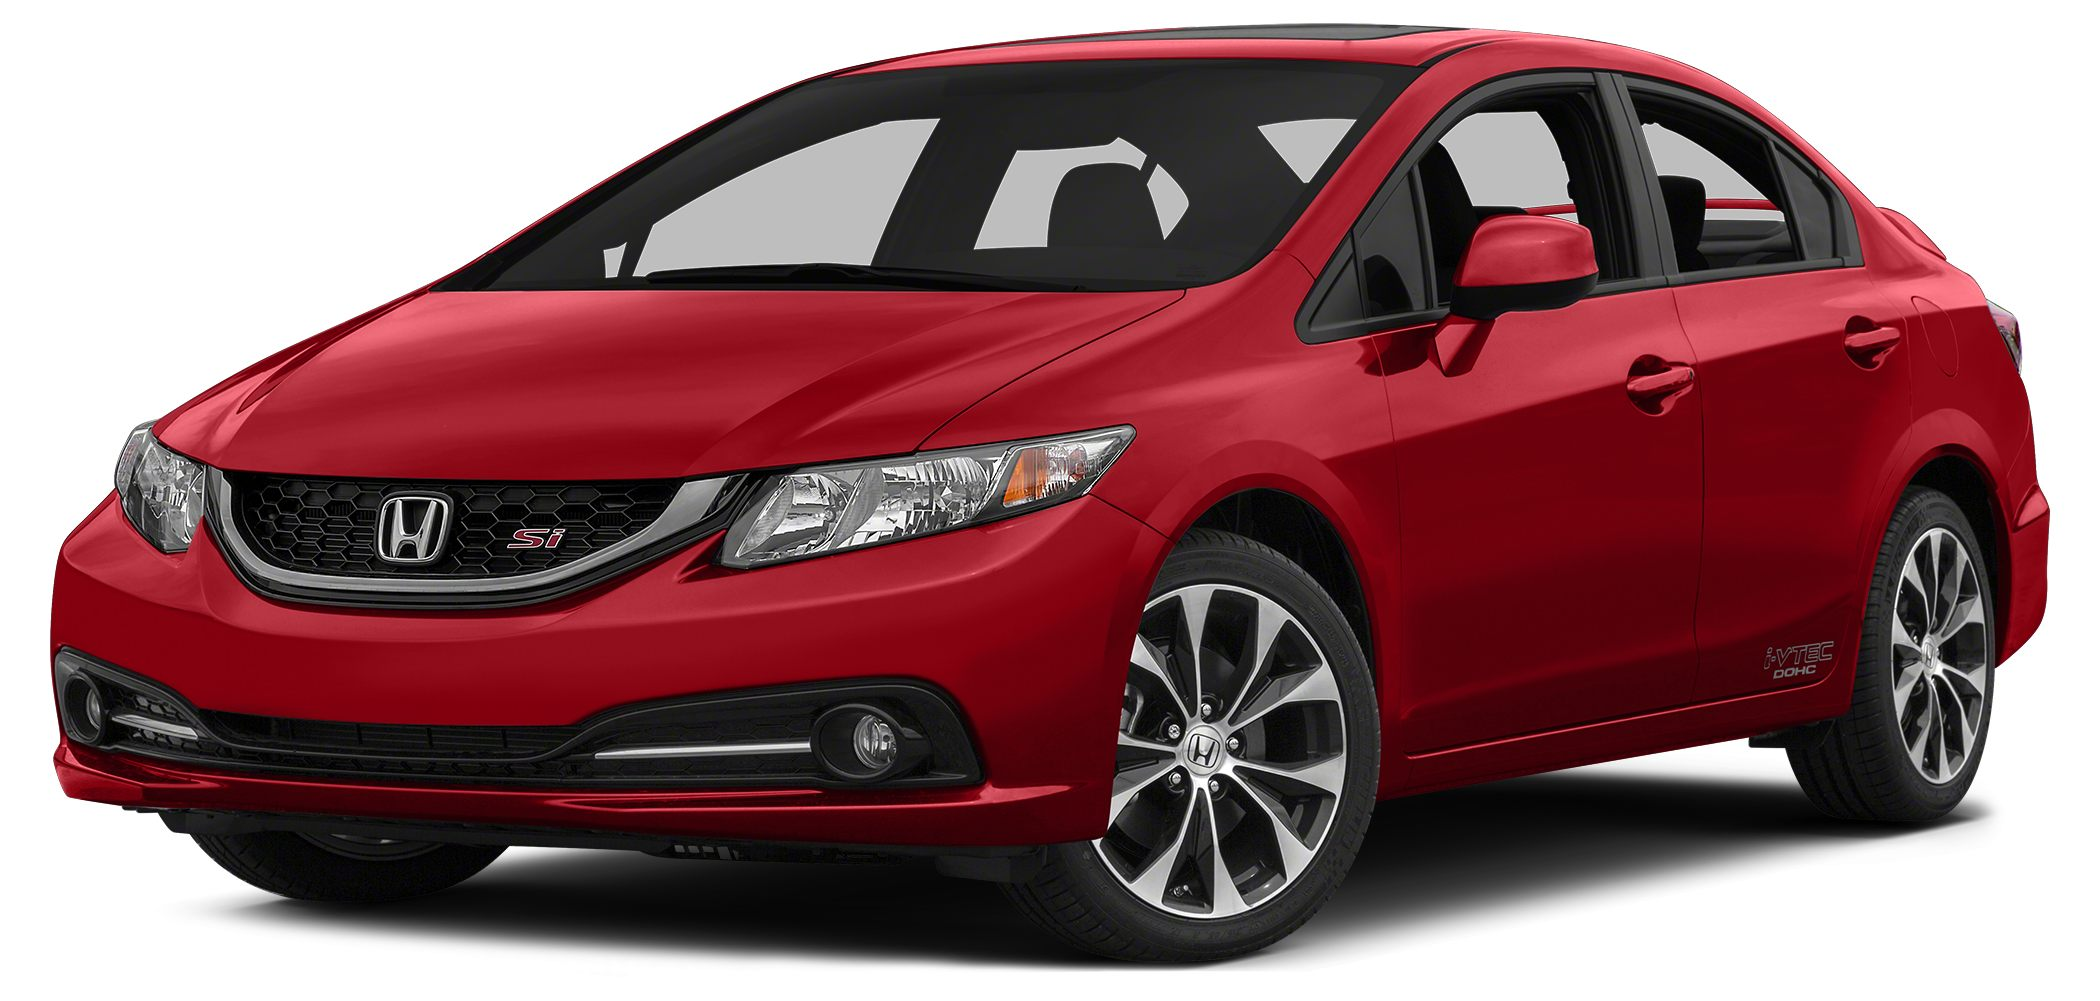 2013 Honda Civic Si WE SELL OUR VEHICLES AT WHOLESALE PRICES AND STAND BEHIND OUR CARS  COME